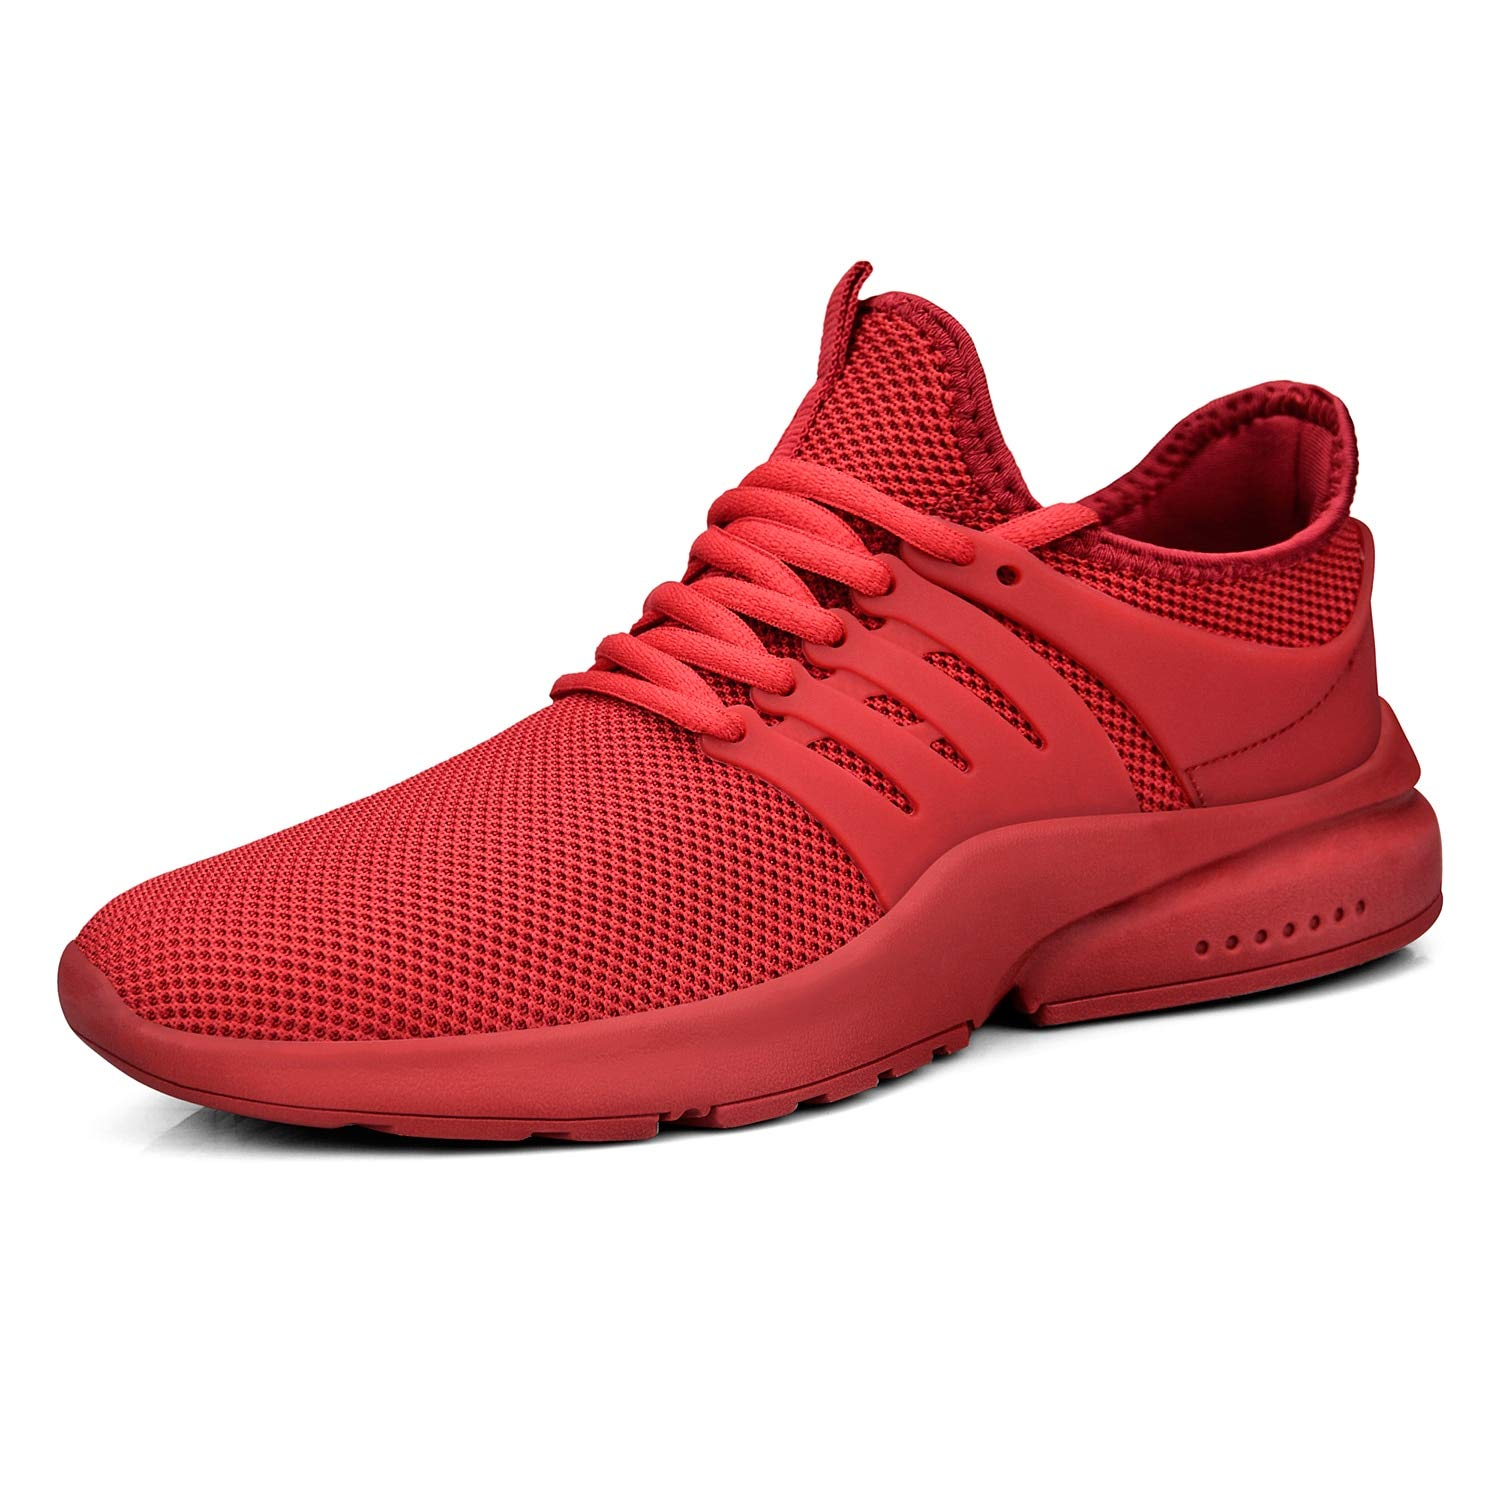 utterly stylish unparalleled meticulous dyeing processes Feetmat Mens Walking Outdoor Lightweight Breathable Shoes Red Running Shoes  for Boys Gym Athletics Tennis Sneakers Red 7.5M